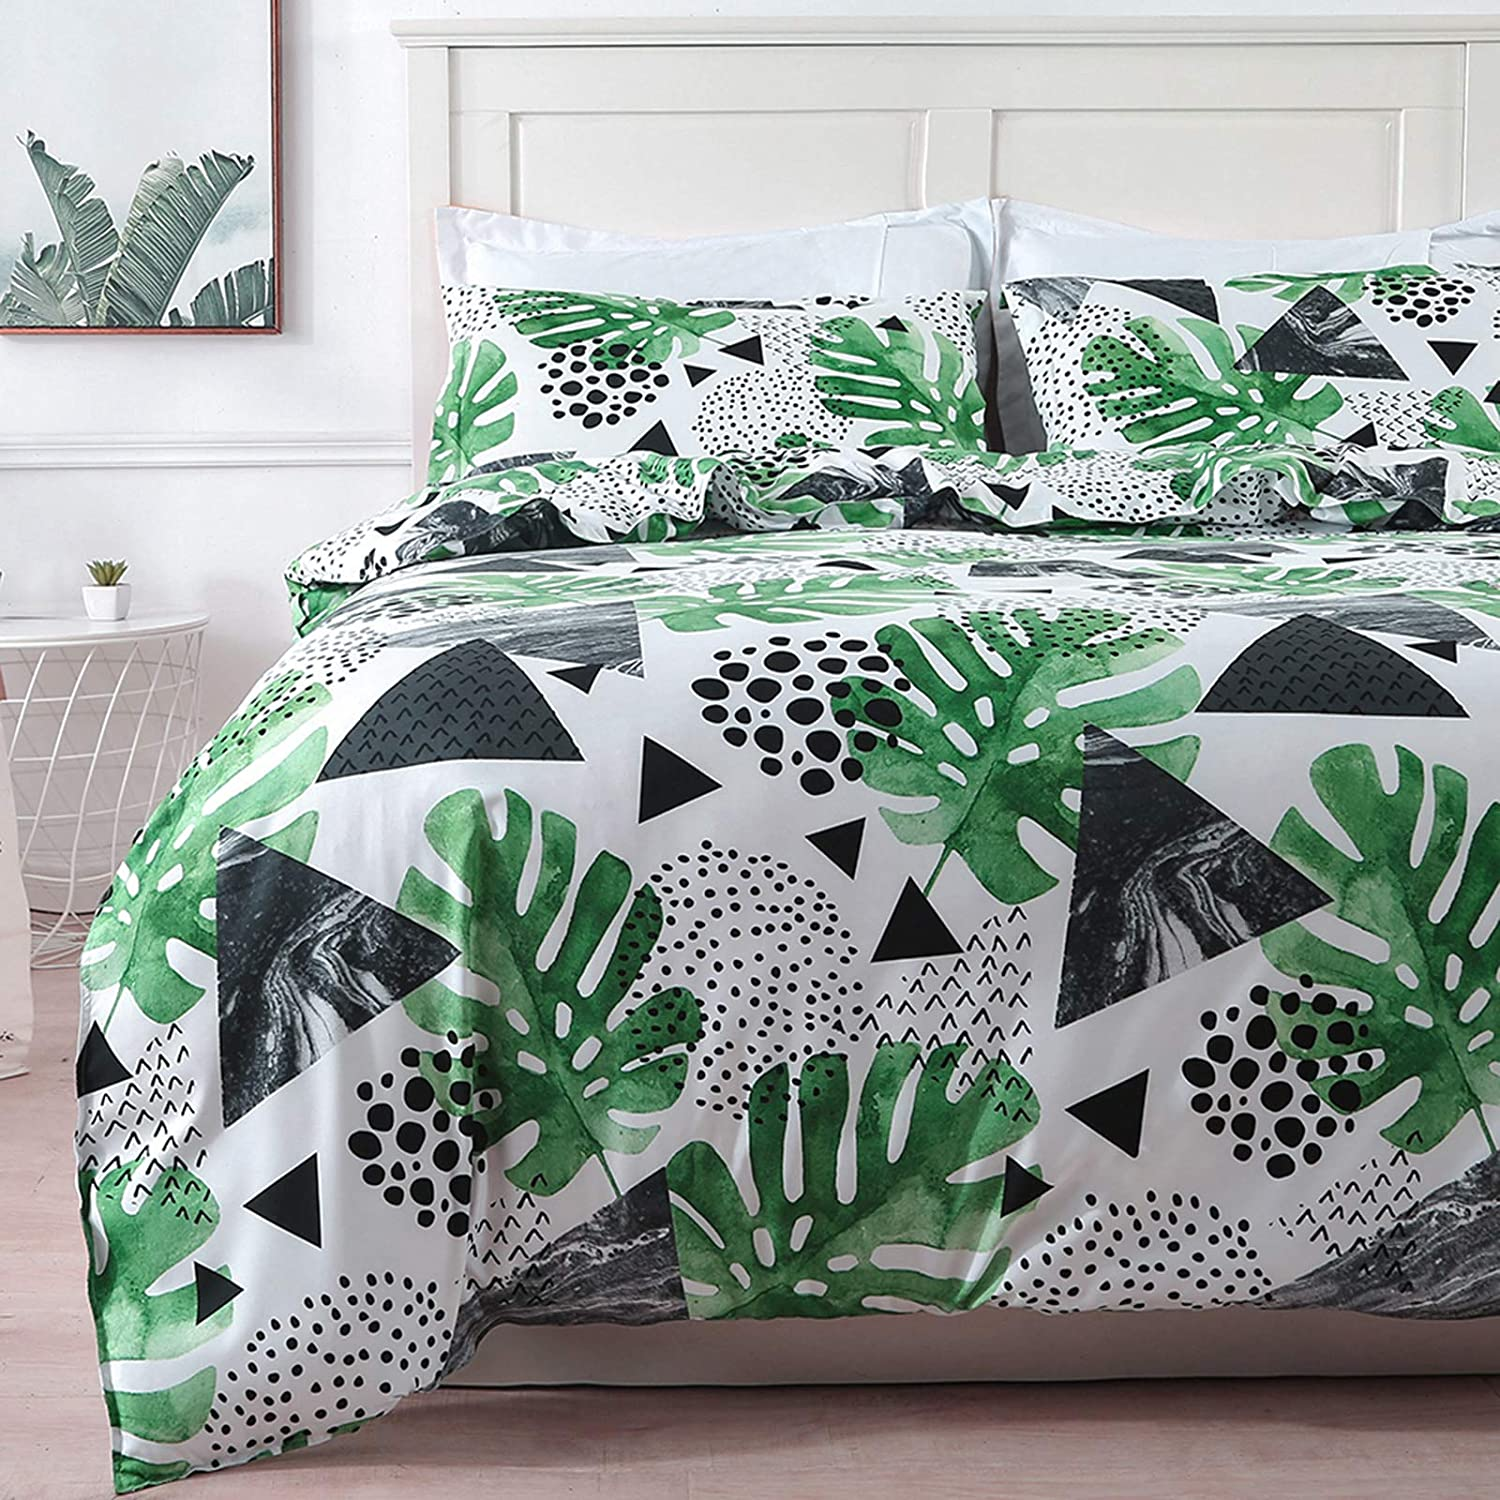 Colorxy Green Monstera Duvet Cover 3 Piece Set - Ultra Soft Microfiber Reversible Tropical Plant Printed Comforter Cover with Zipper Closure, Corner Ties and 2 Pillow Shams, Full/Queen (90x90 inches)